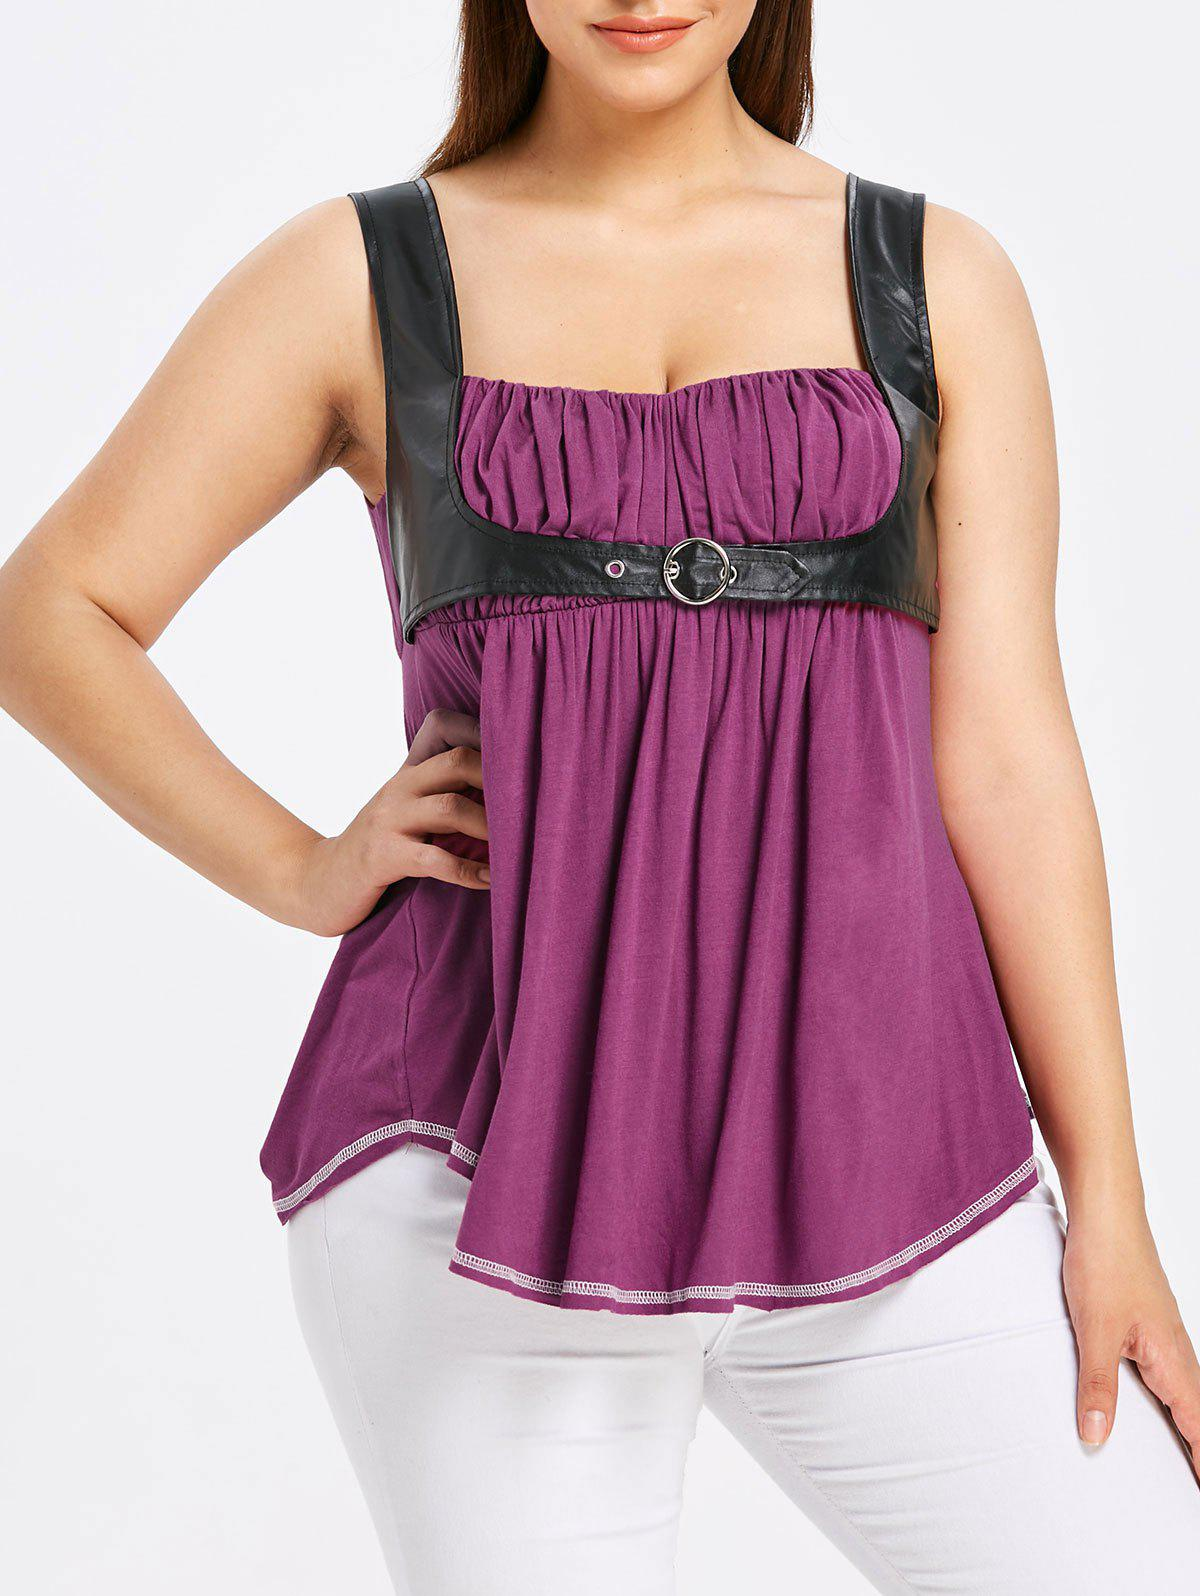 Chic Plus Size PU Leather Trim Gothic Tank Top